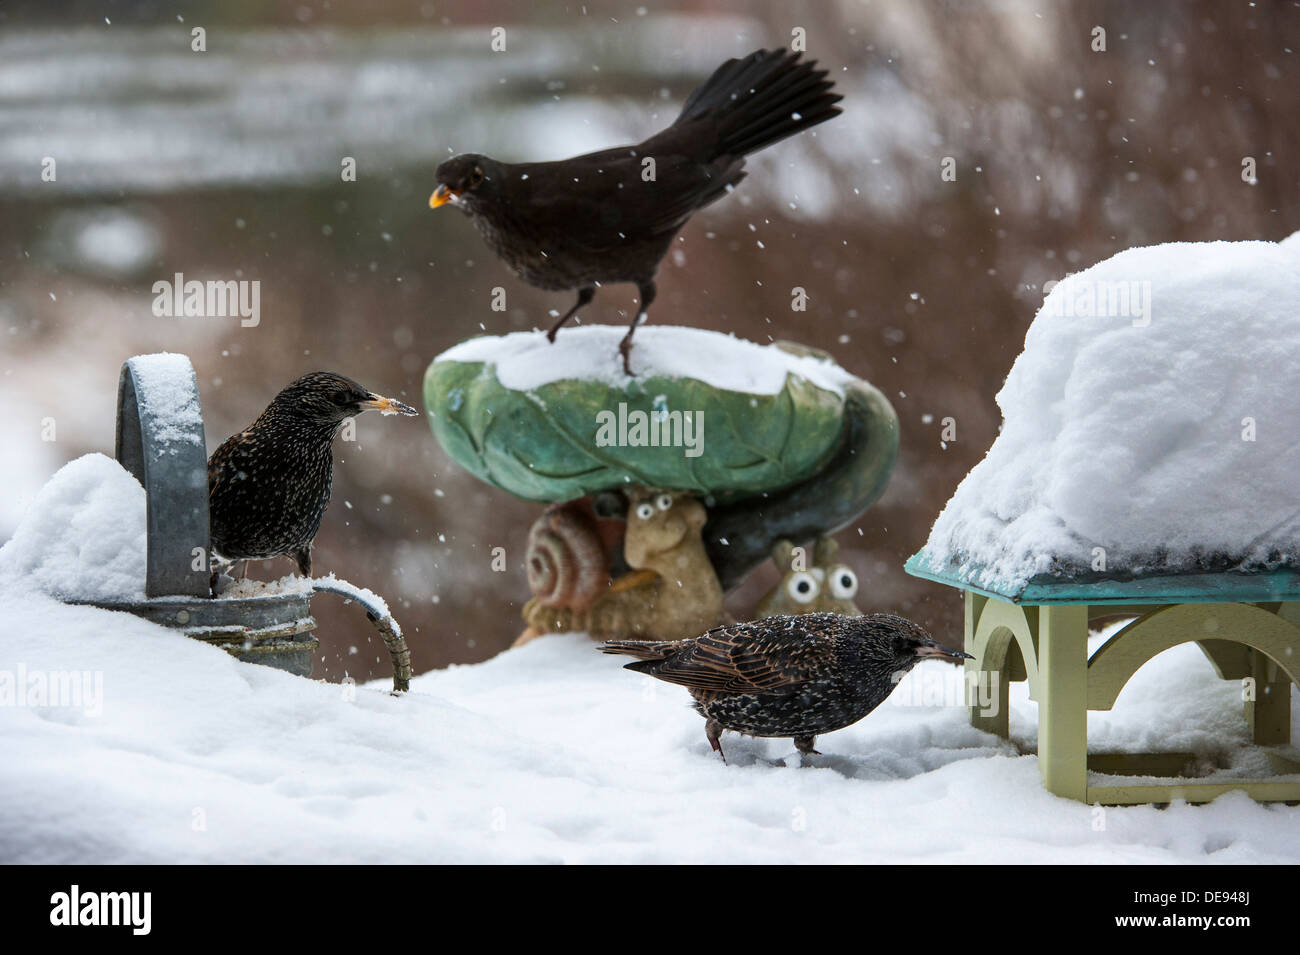 Starling (Sturnus vulgaris) and Eurasian Blackbird (Turdus merula) female at garden bird feeder during snow shower in winter - Stock Image